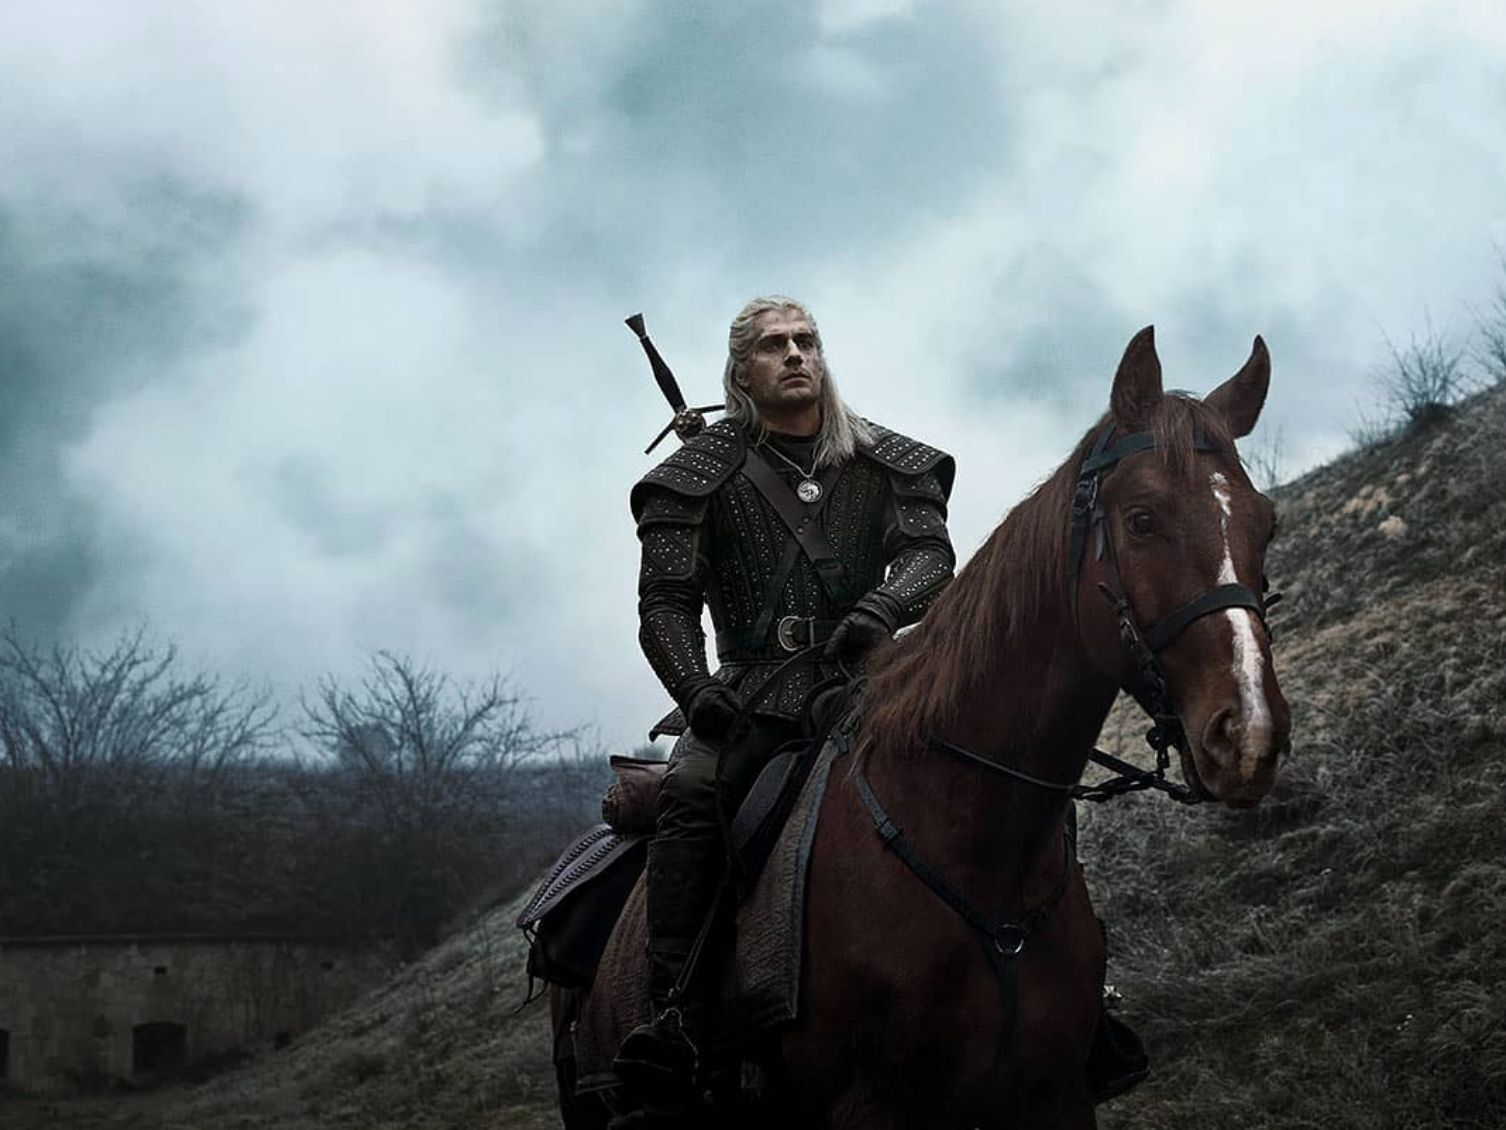 Okay, but what IS a witcher? Henry Cavill explains